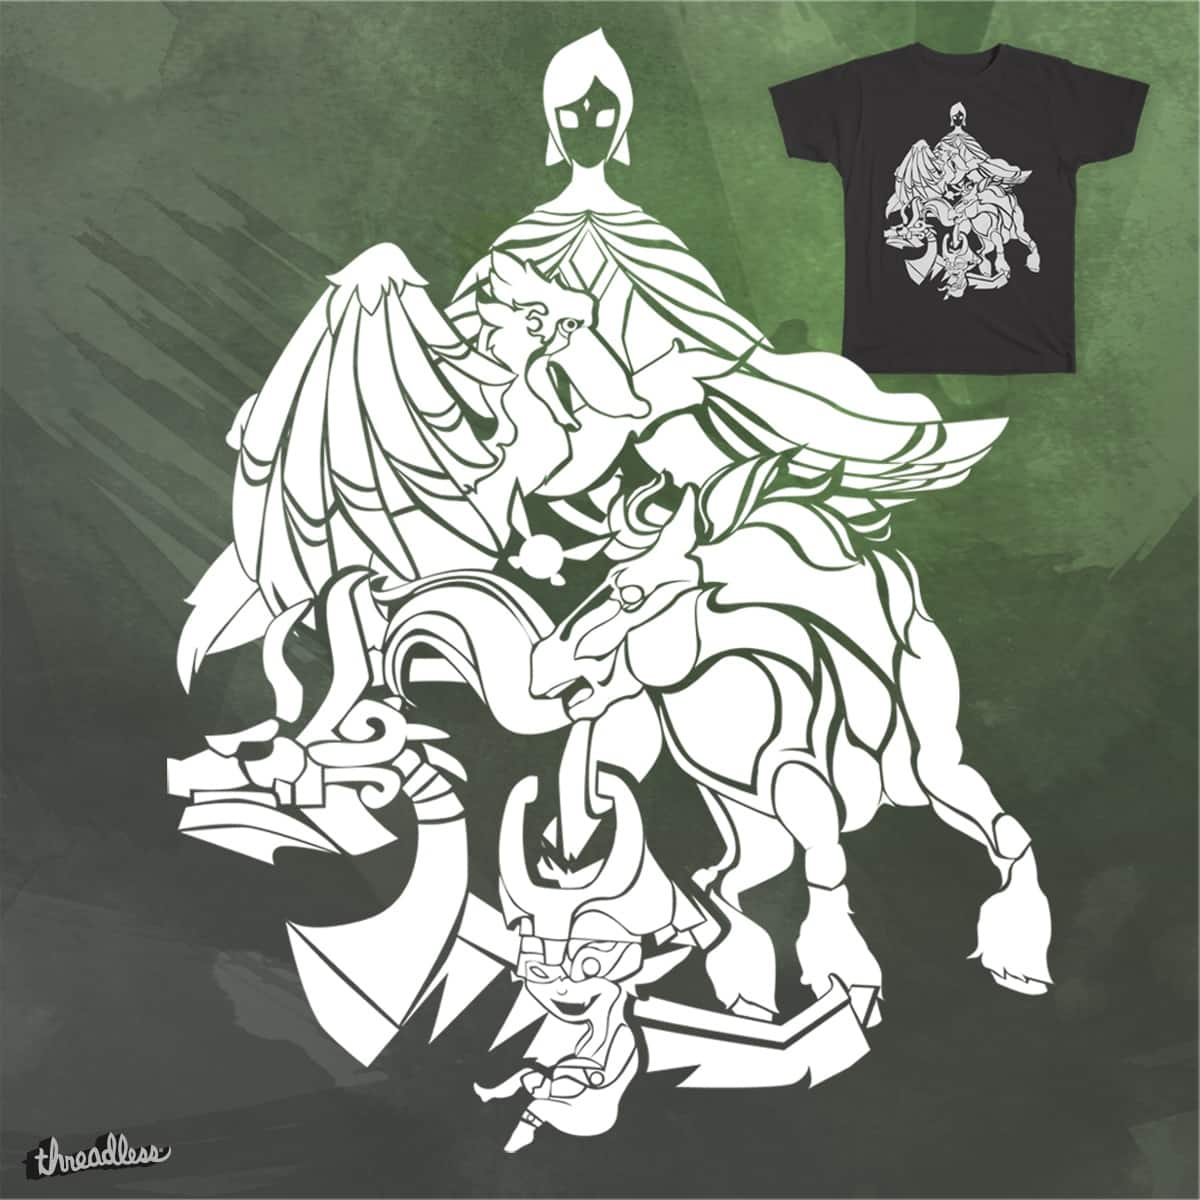 Legend of Zelda - Link's Companions by Surefoot on Threadless